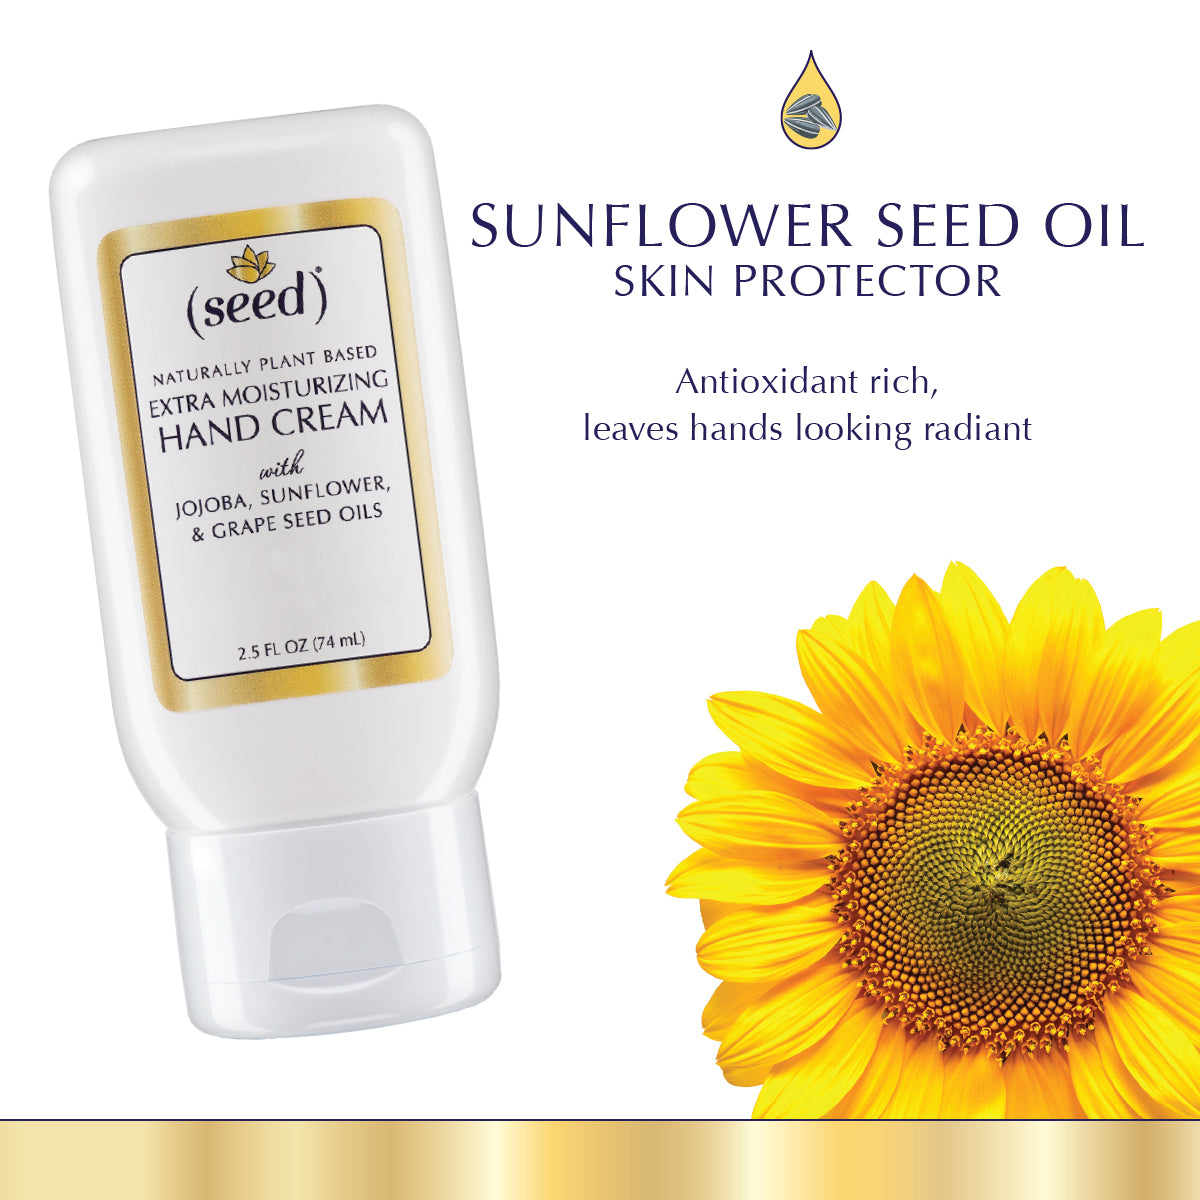 Seed Extra Moisturizing Hand Cream features sunflower seed oil